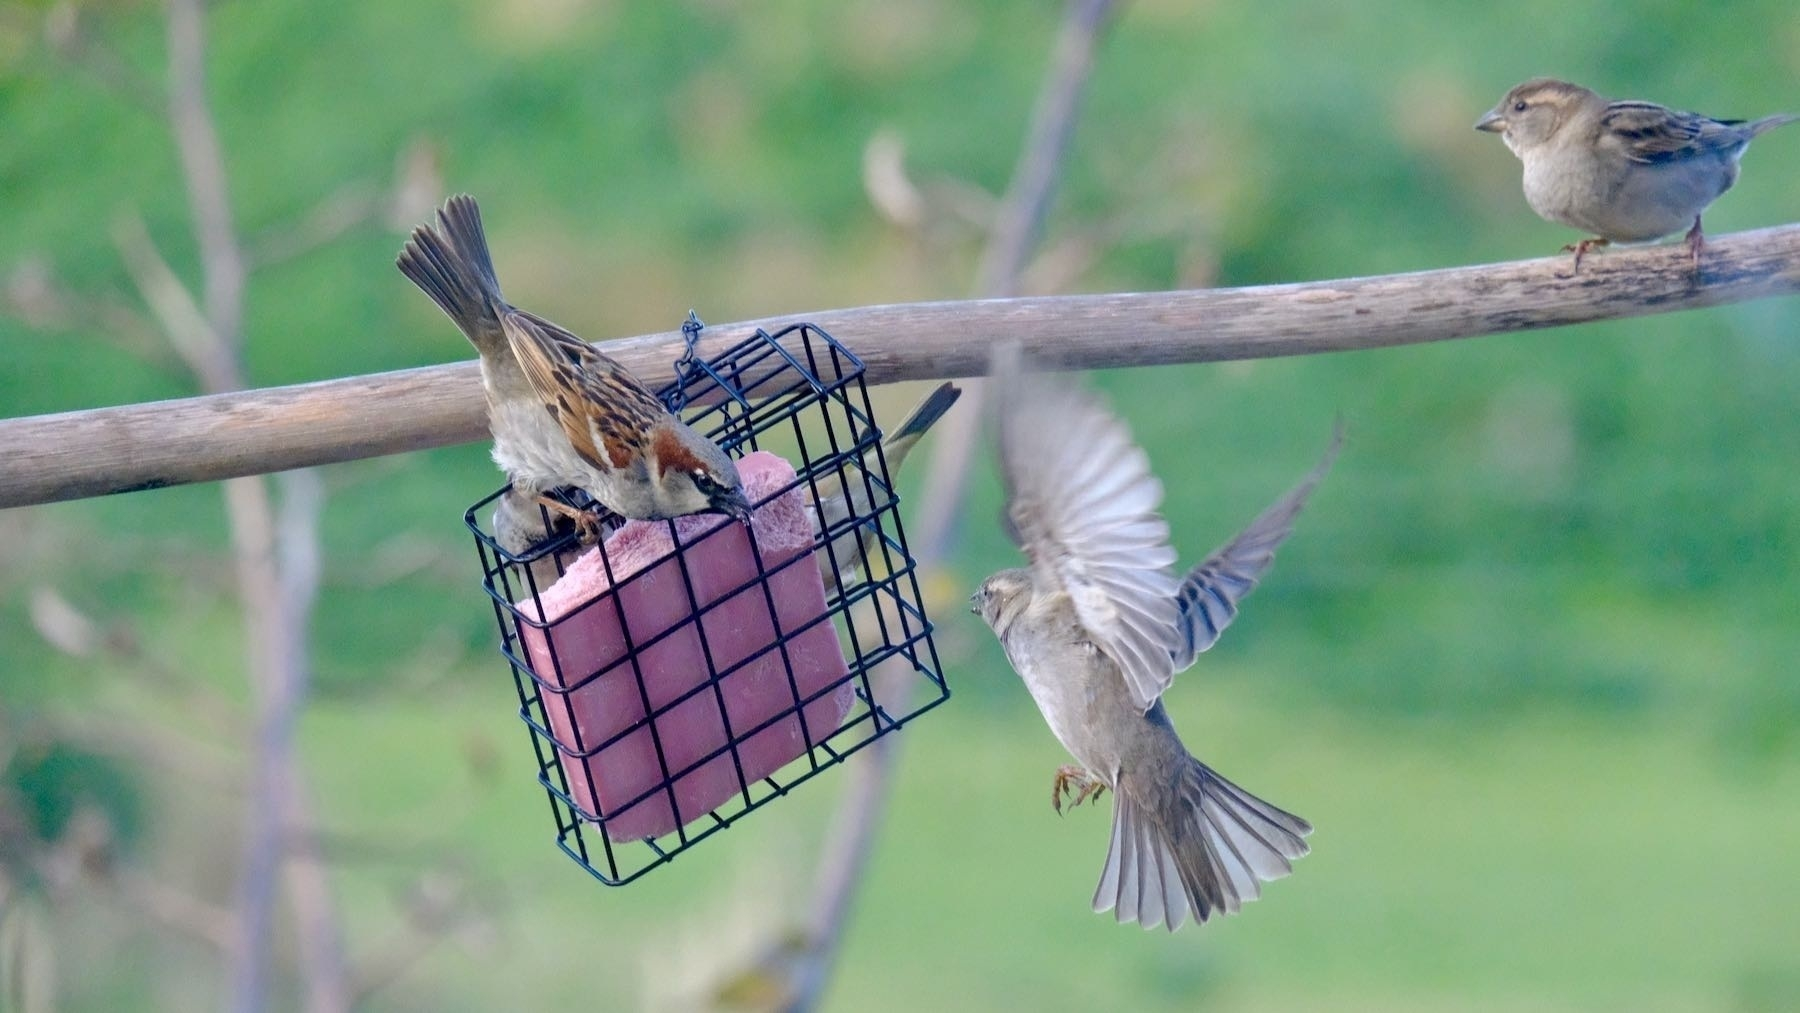 One sparrow flying in while another seems to be warning it off.